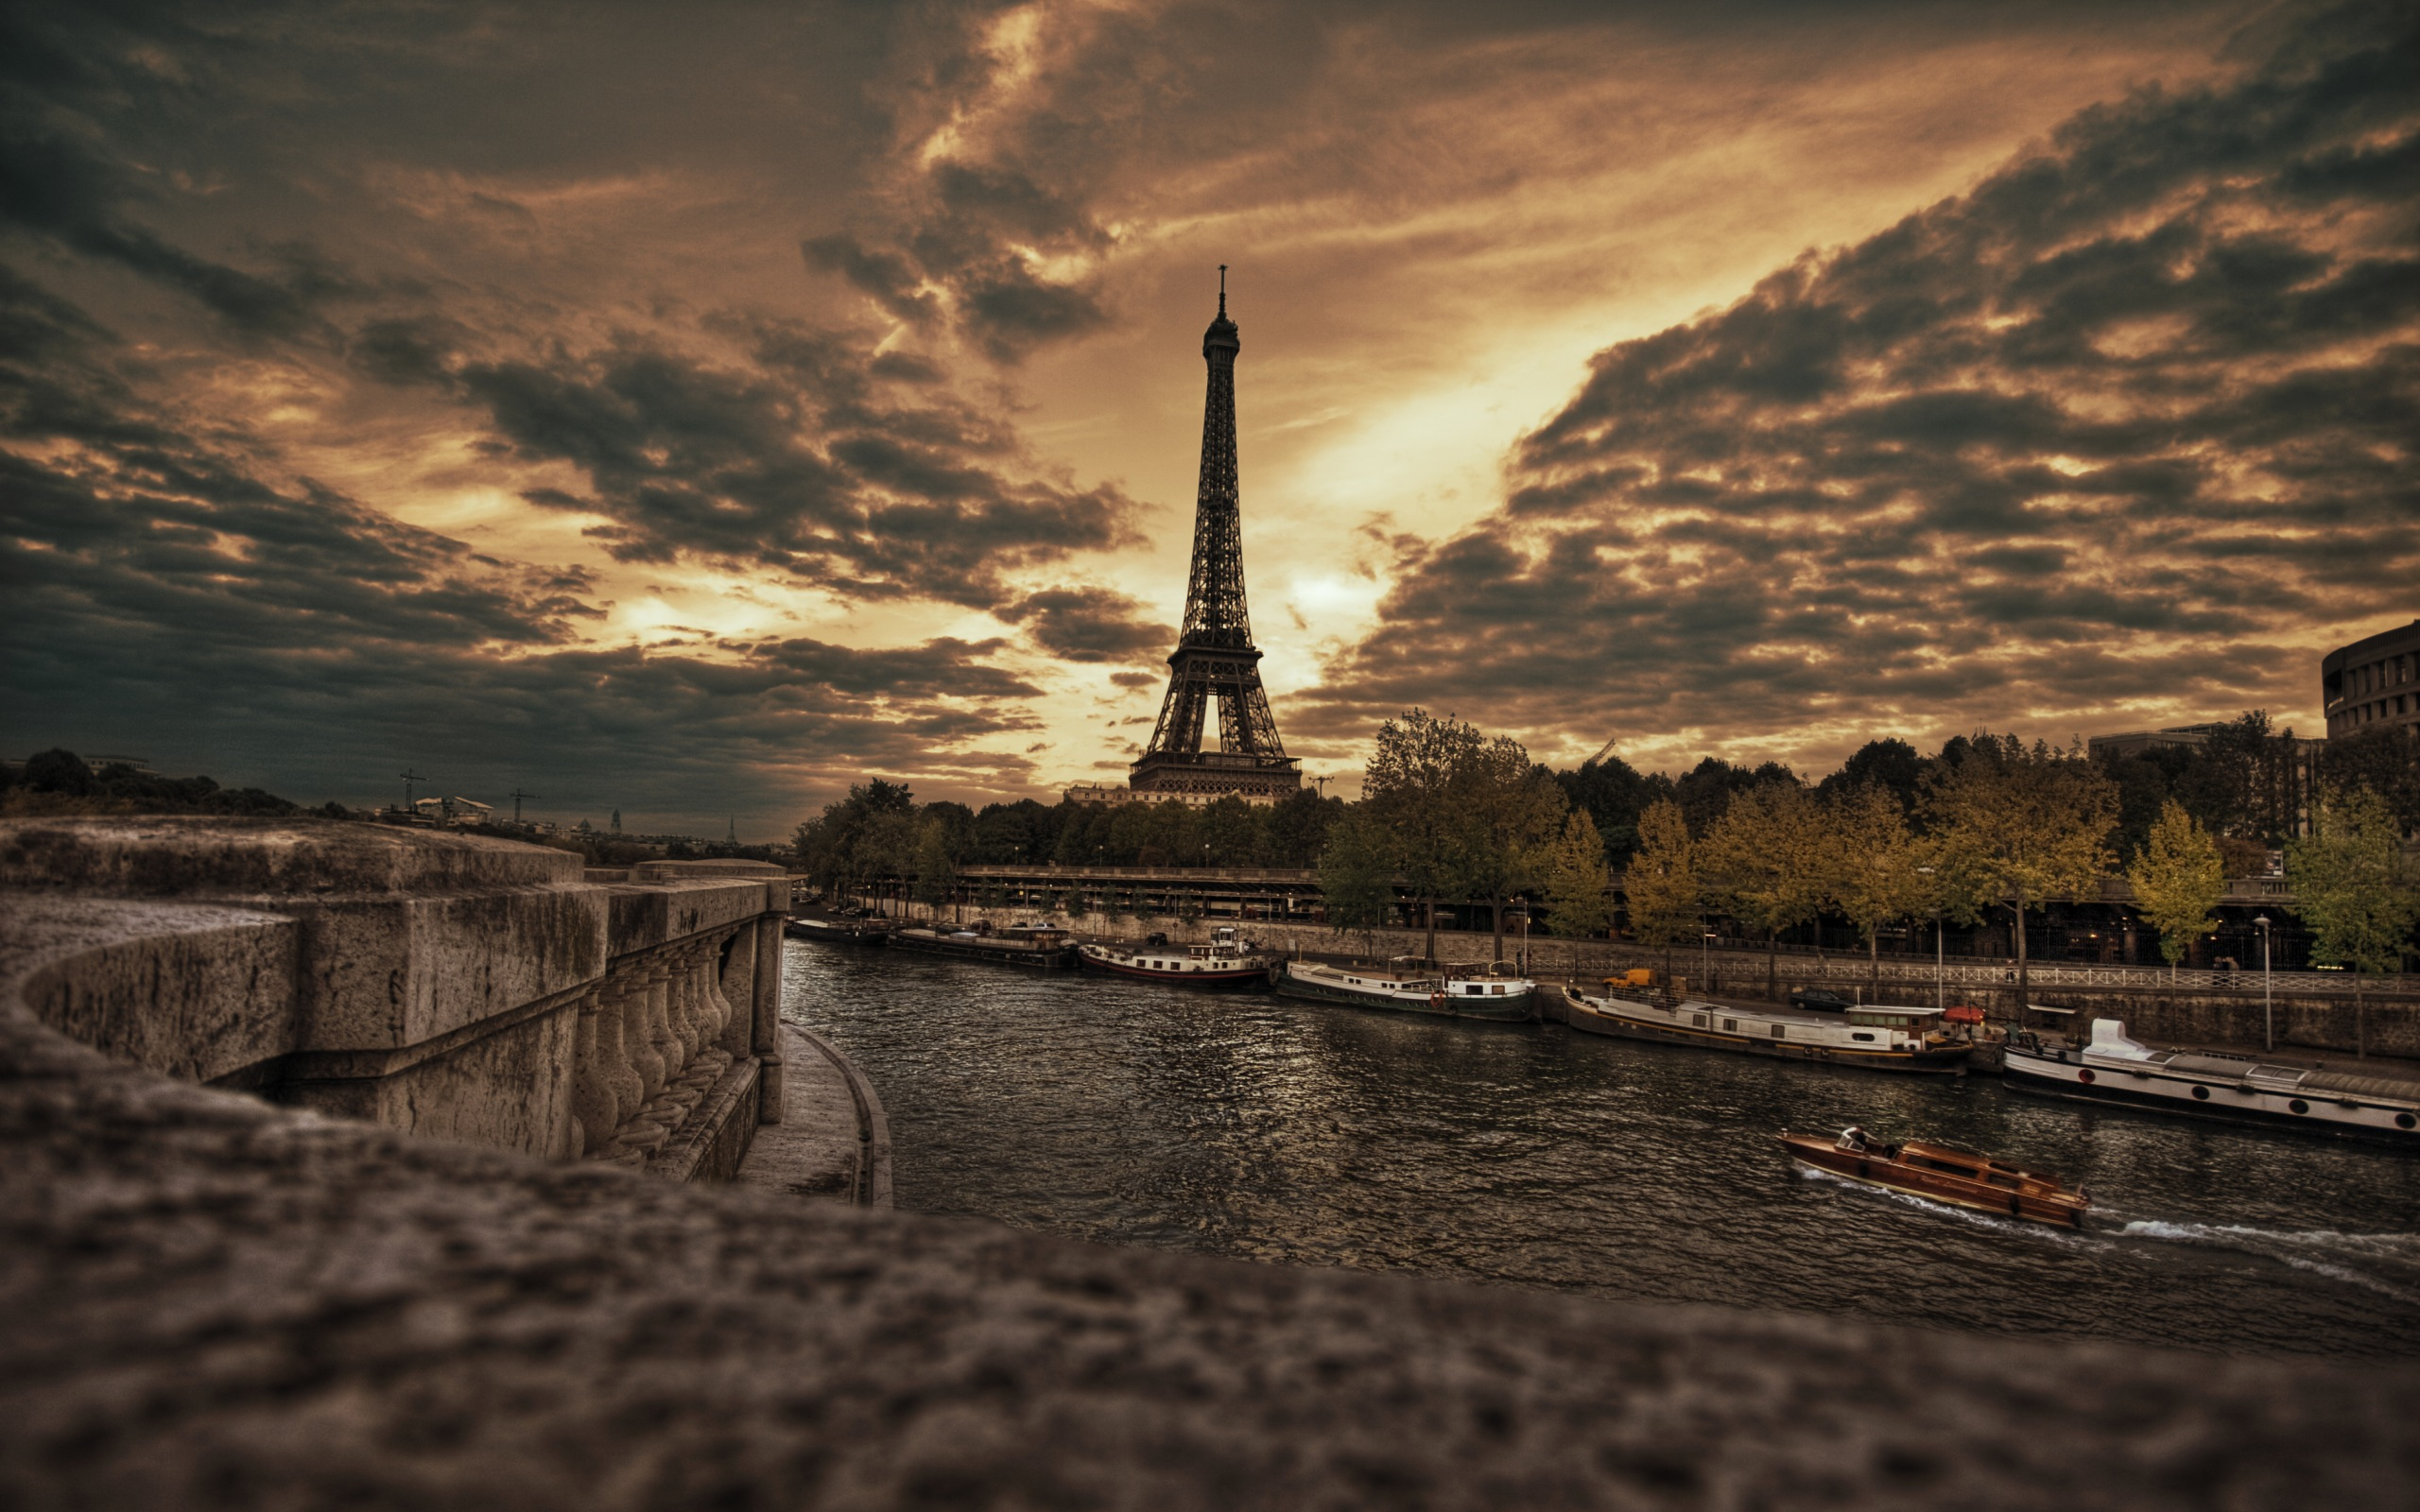 eiffel tower full hd wallpaper and background image | 2560x1600 | id